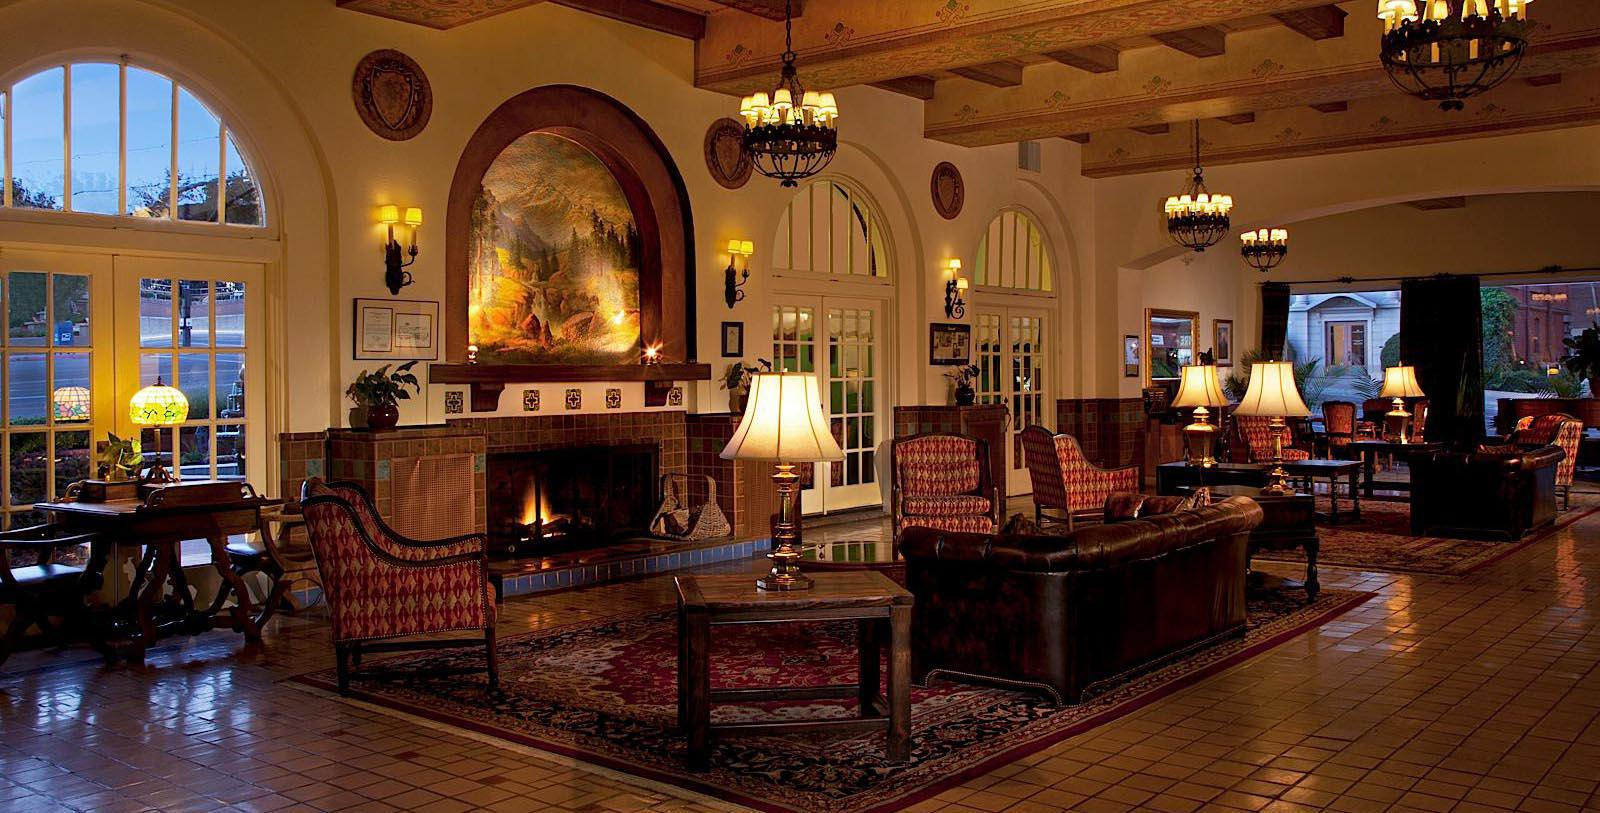 Image of lobby lounge space Hassayampa Inn, 1927, Member of Historic Hotels of America, in Prescott, Arizona, Hot Deals